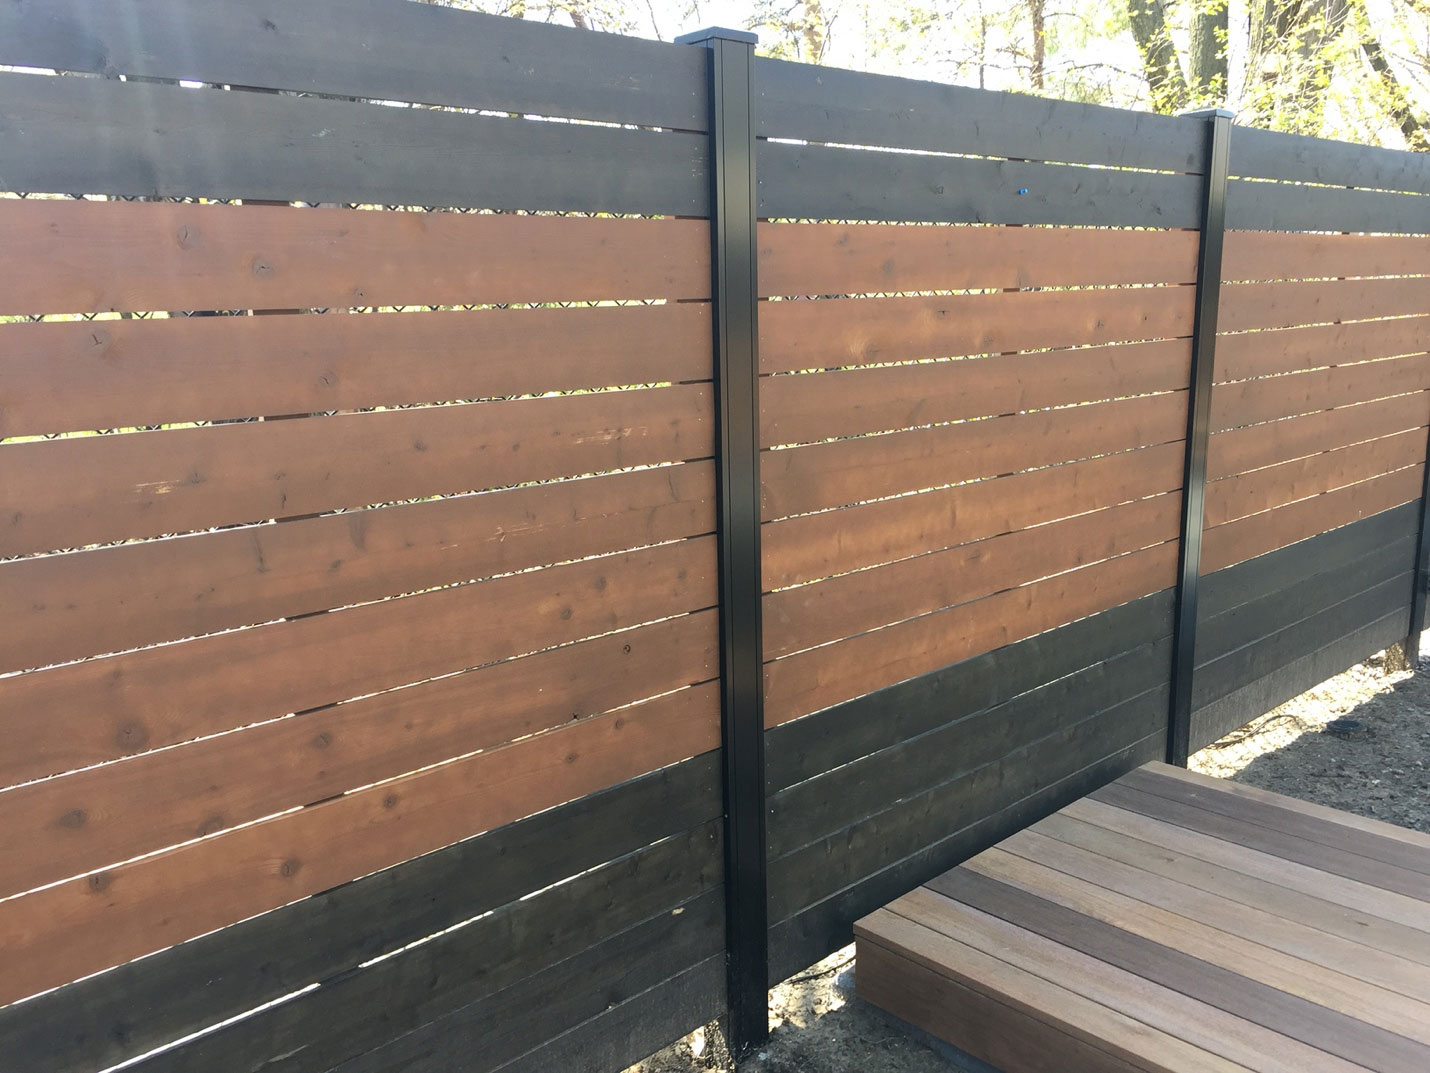 Step 9 for the spa landscaping: custom-designed fence for privacy